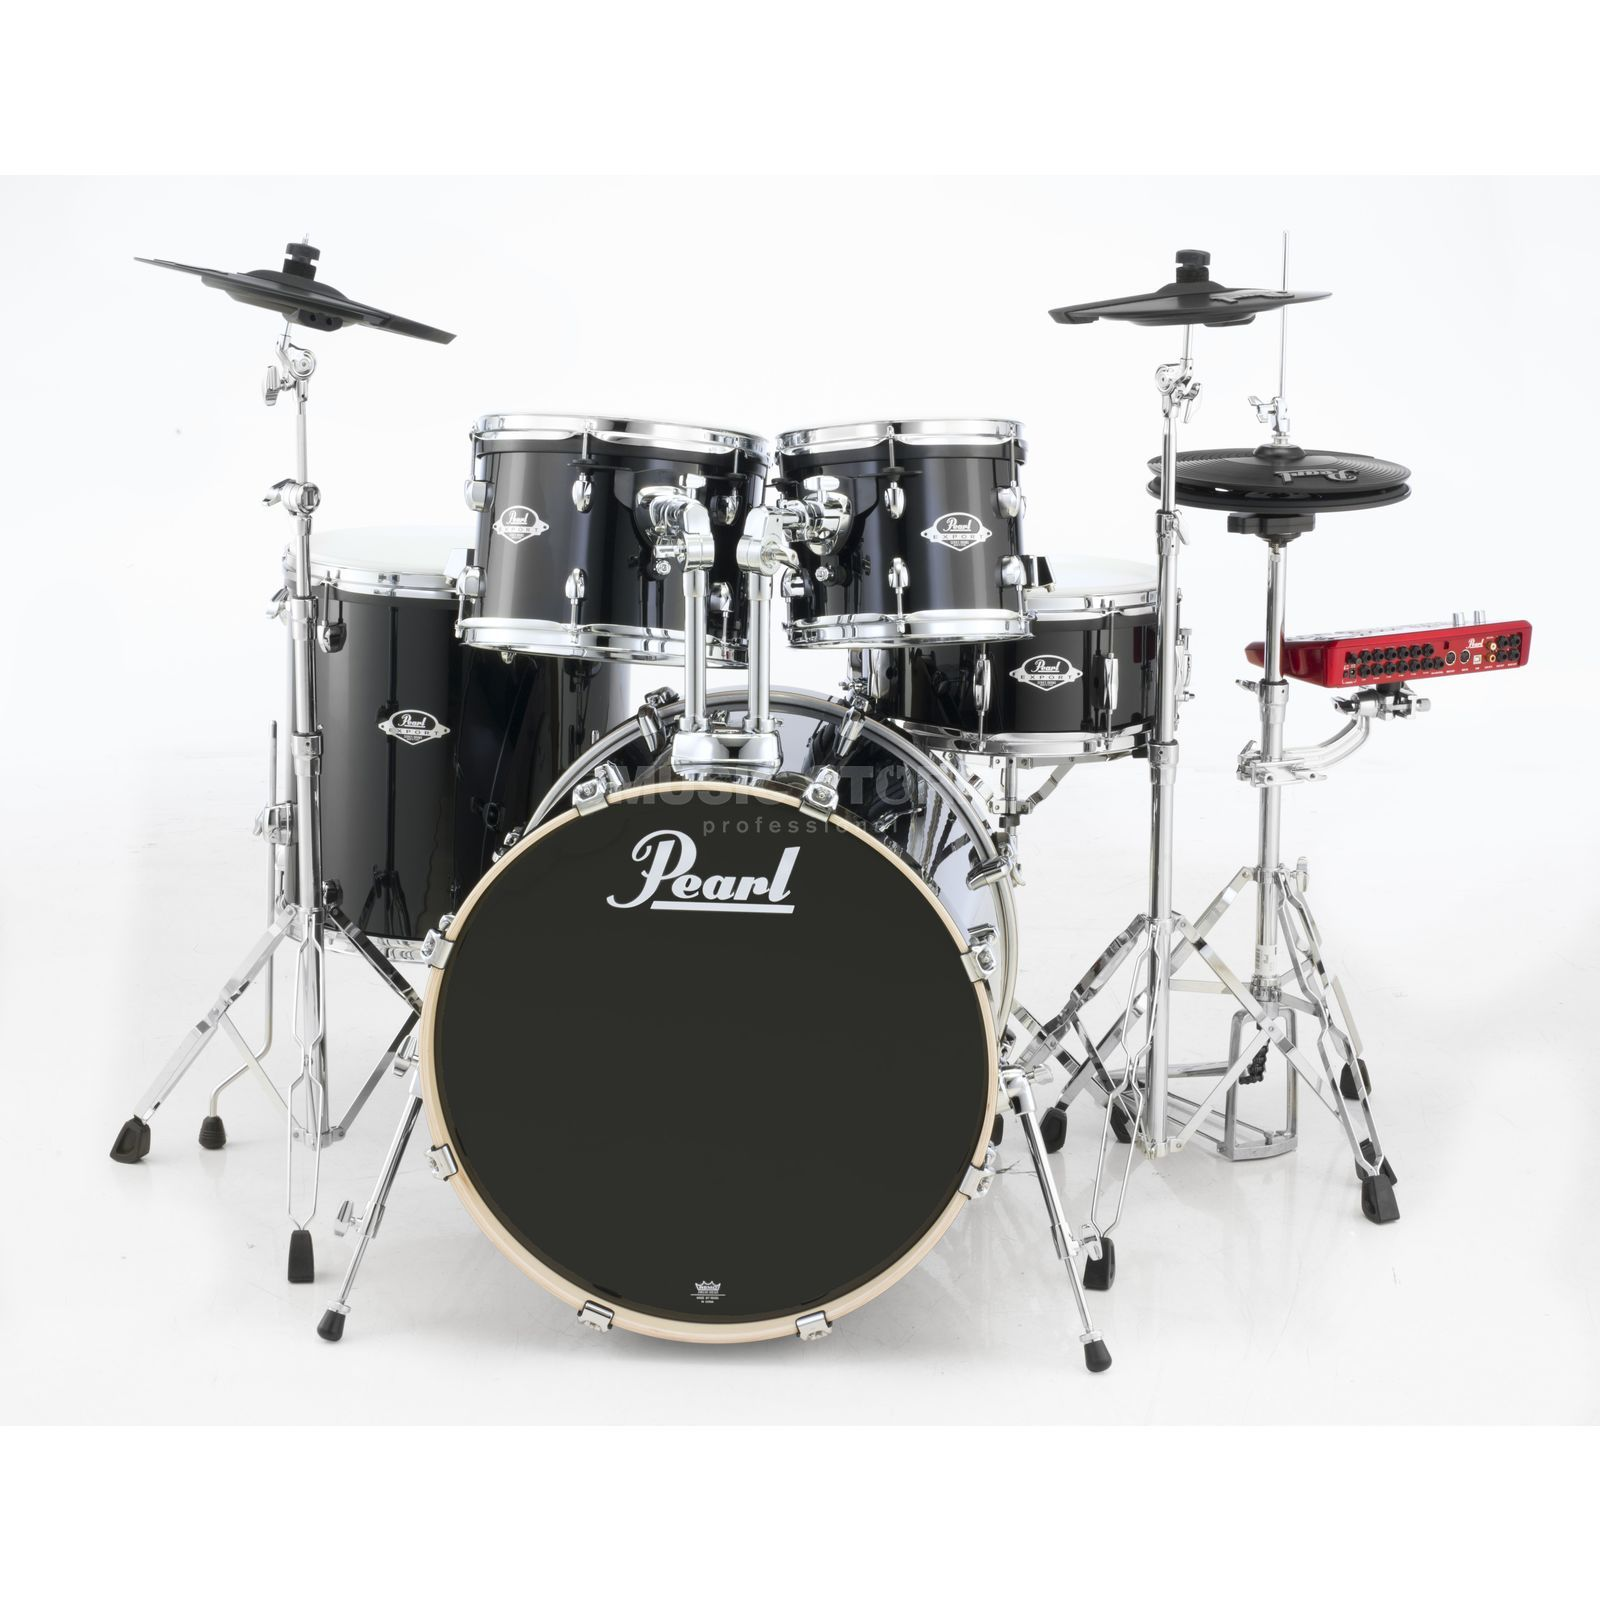 Pearl ePro Live E-DrumSet EPEXX725S/C, Jet Black Produktbillede